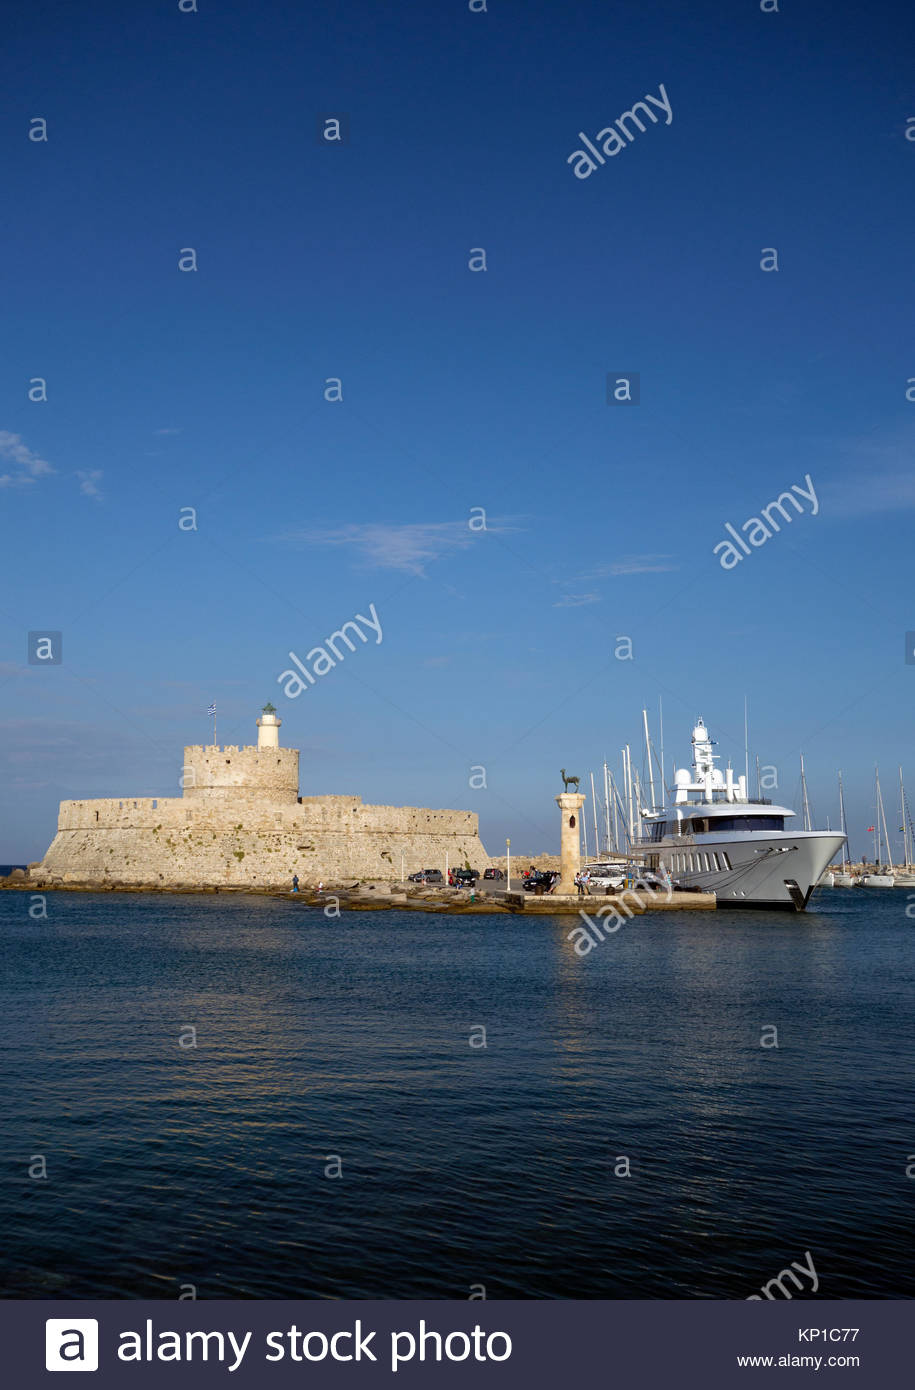 Europe, Greece, Rhodes Island, View Of Part Of Rhodes Castle With Motor Yacht In Port Stock Photo